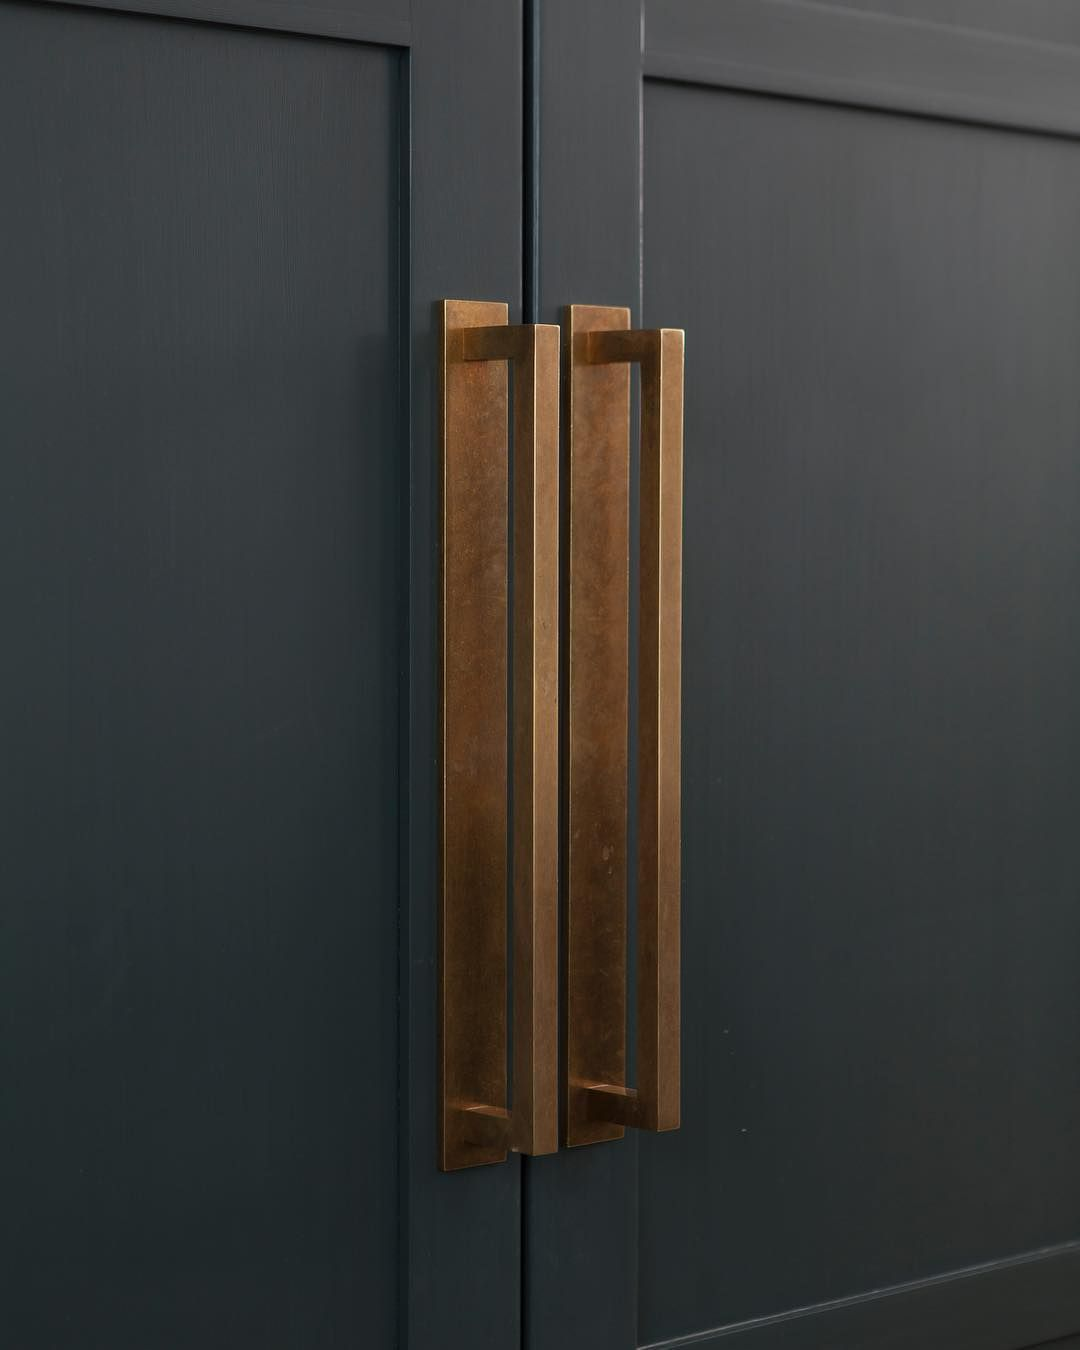 Make A Striking Statement With Our Bromwich Collection Appliance Pulls In A Burnished Brass Finish Manufa Appliance Pull Brass Kitchen Hardware Brass Finish